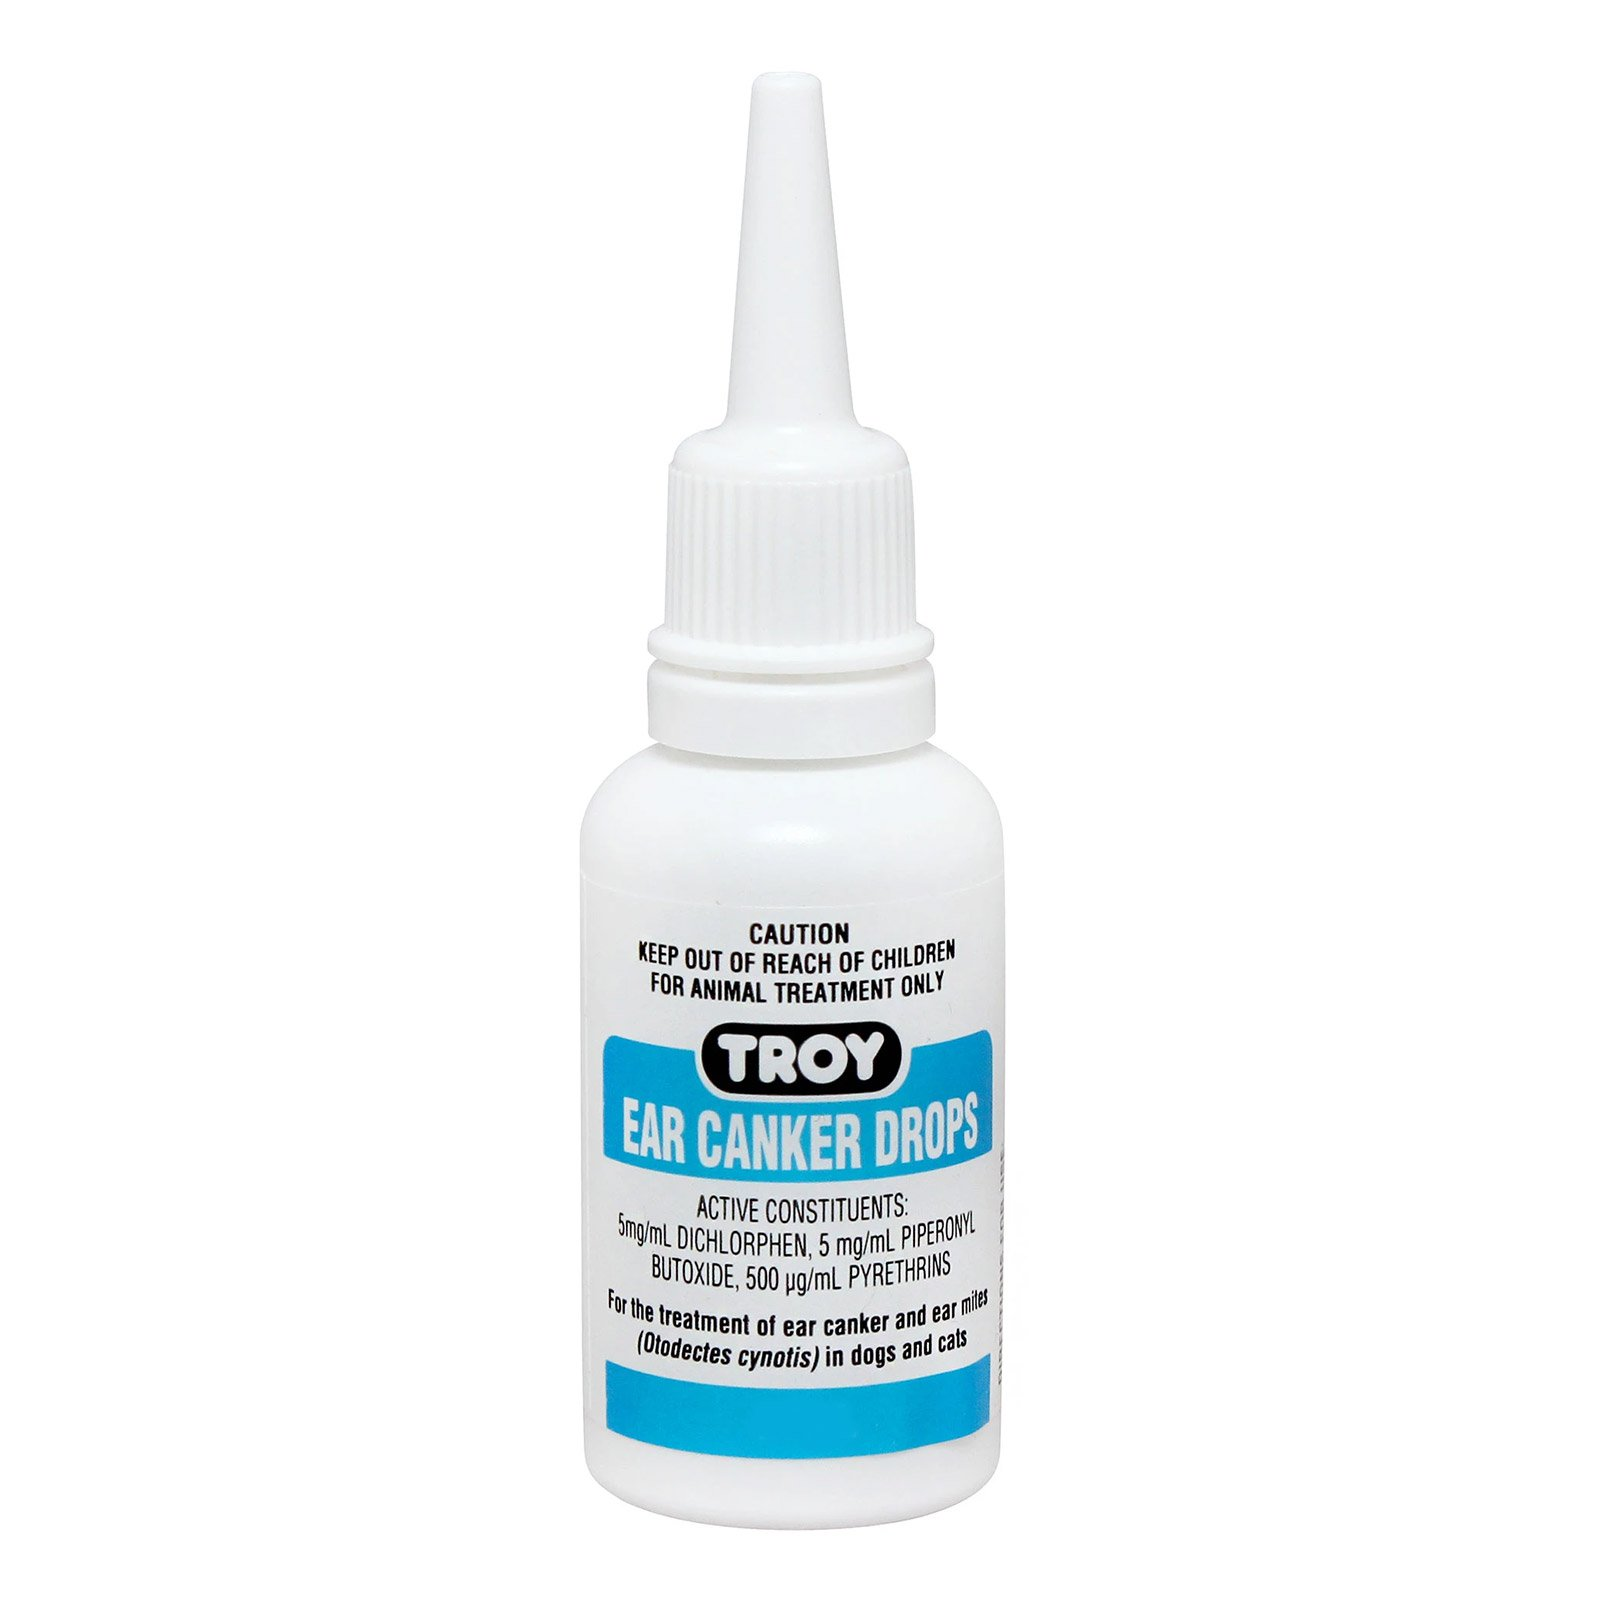 Troy Ear Canker Drops For Dogs